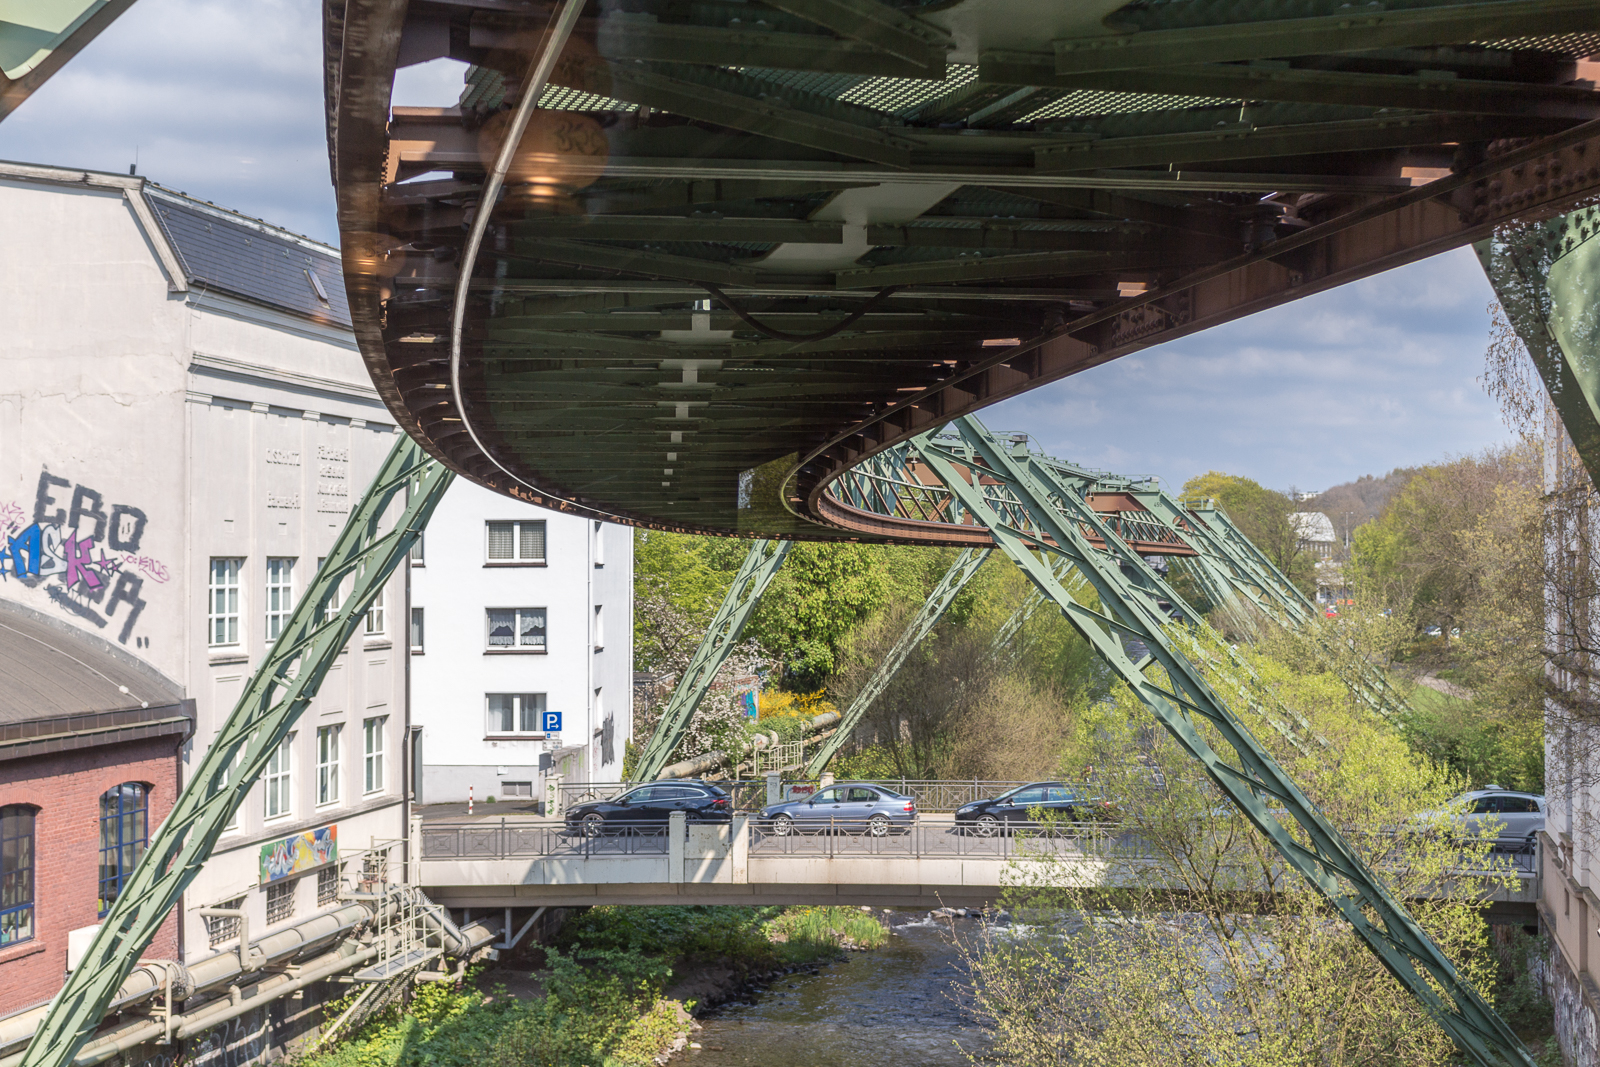 wuppertal-vielweib-on-tour-3286